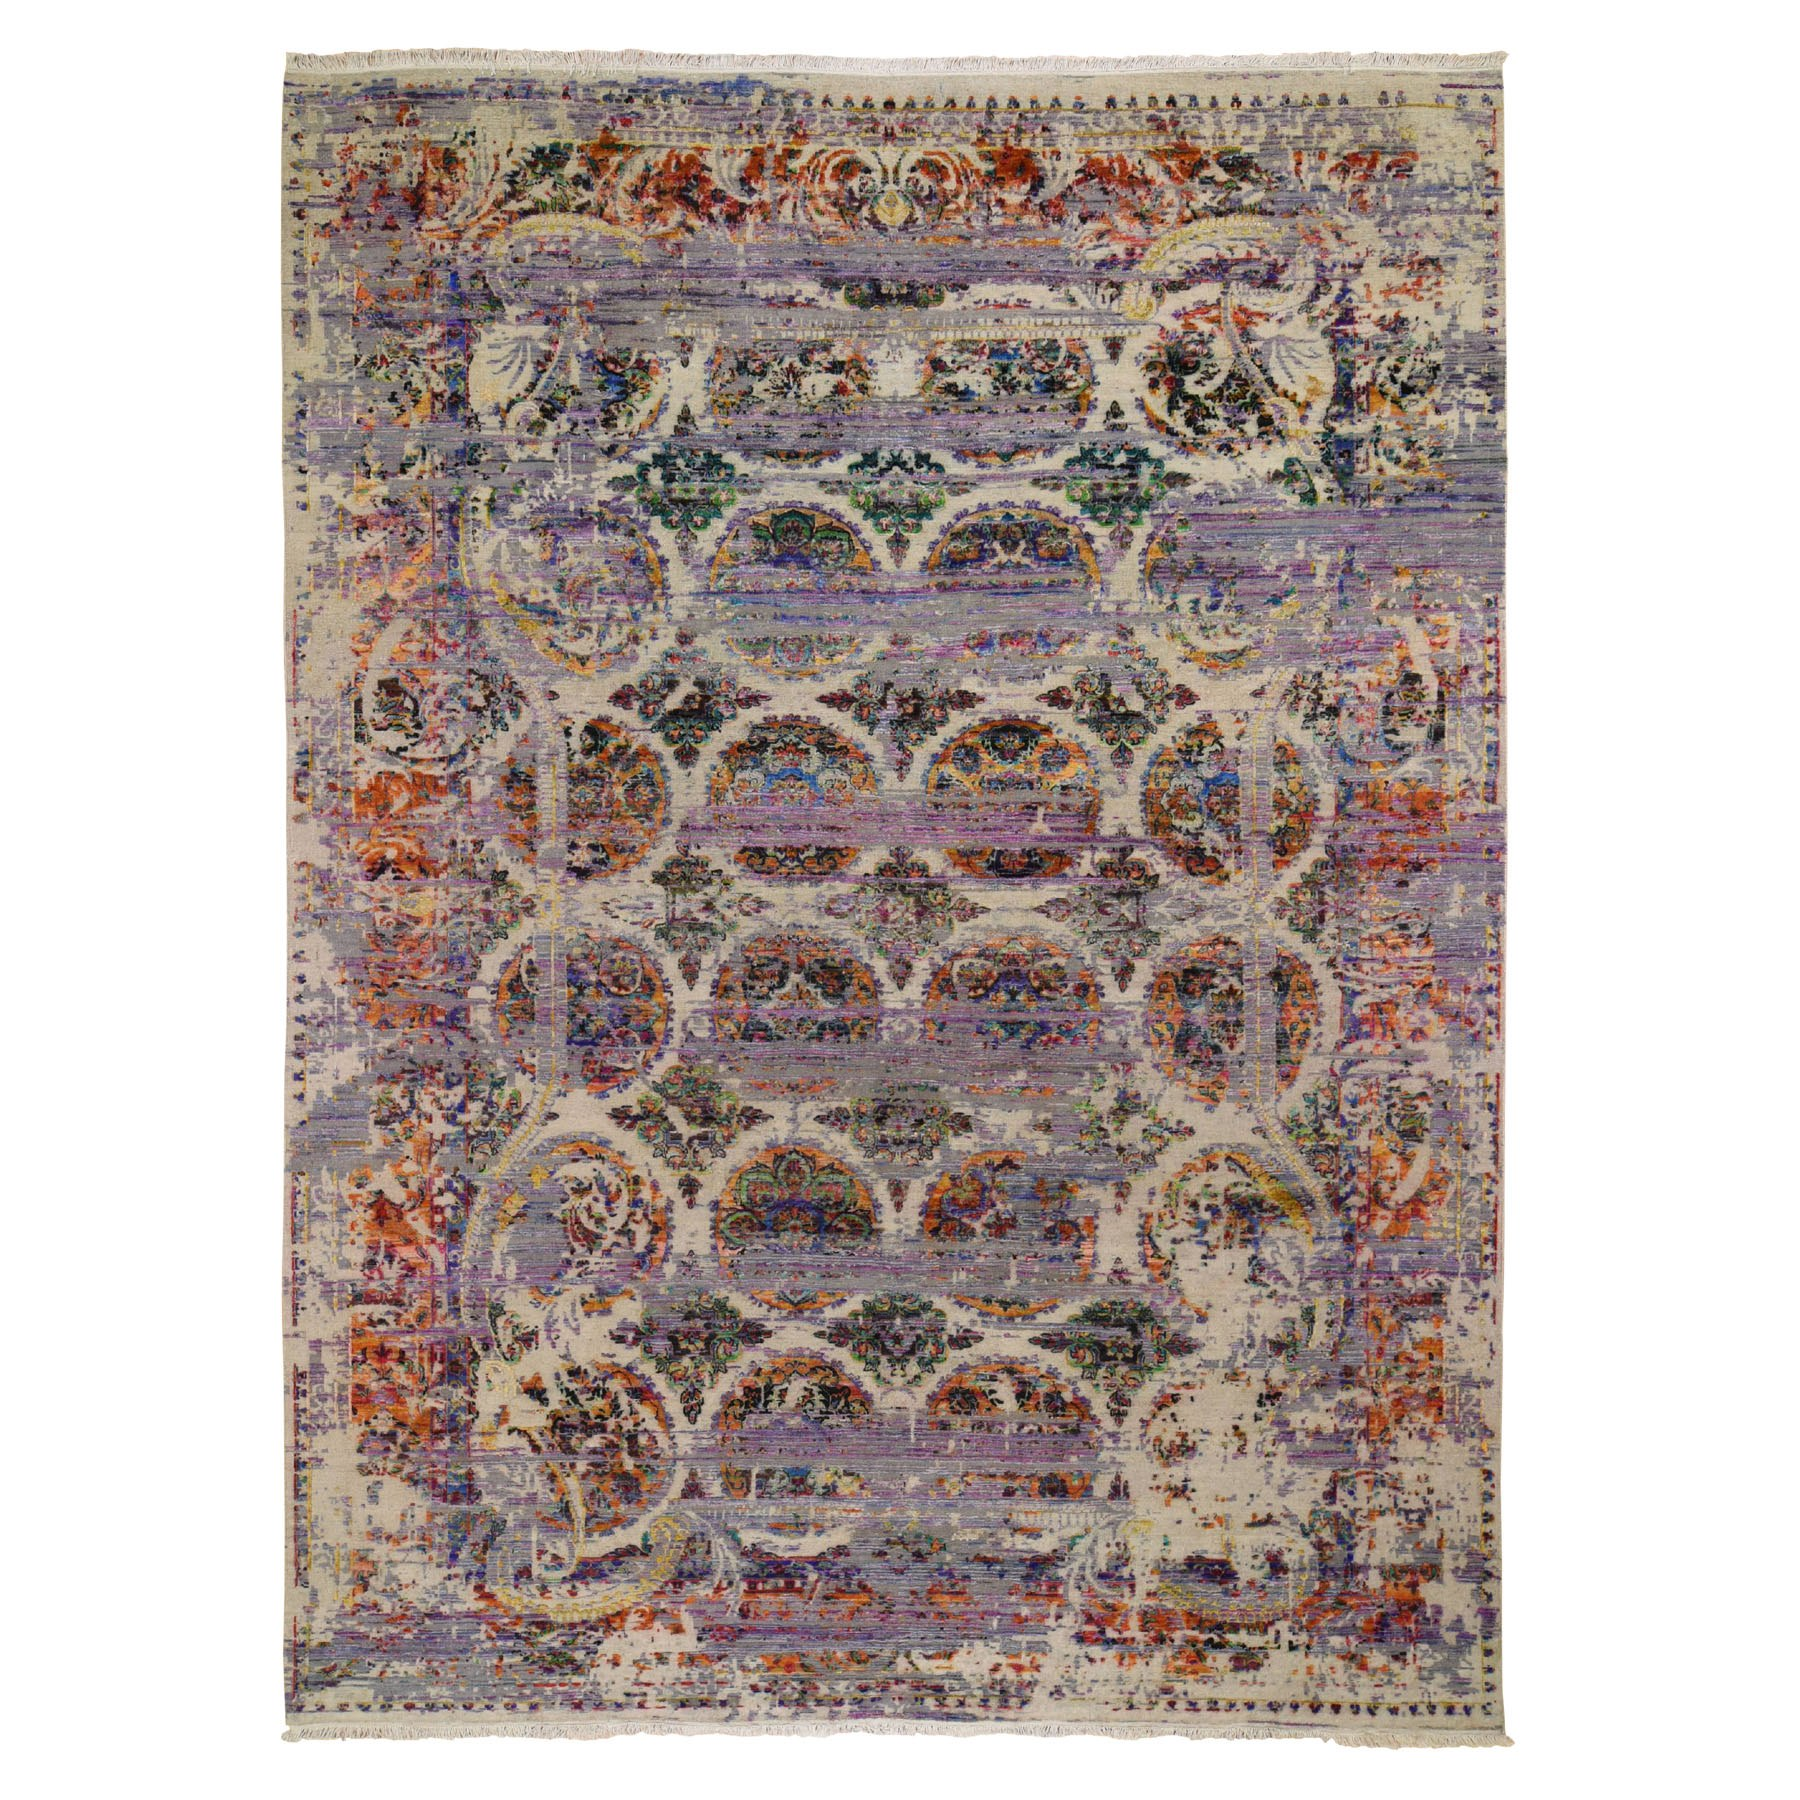 9'X12' Erased Rossets, Colorful Sari Silk With Textured Wool Hand Knotted Oriental Rug moad8ec7